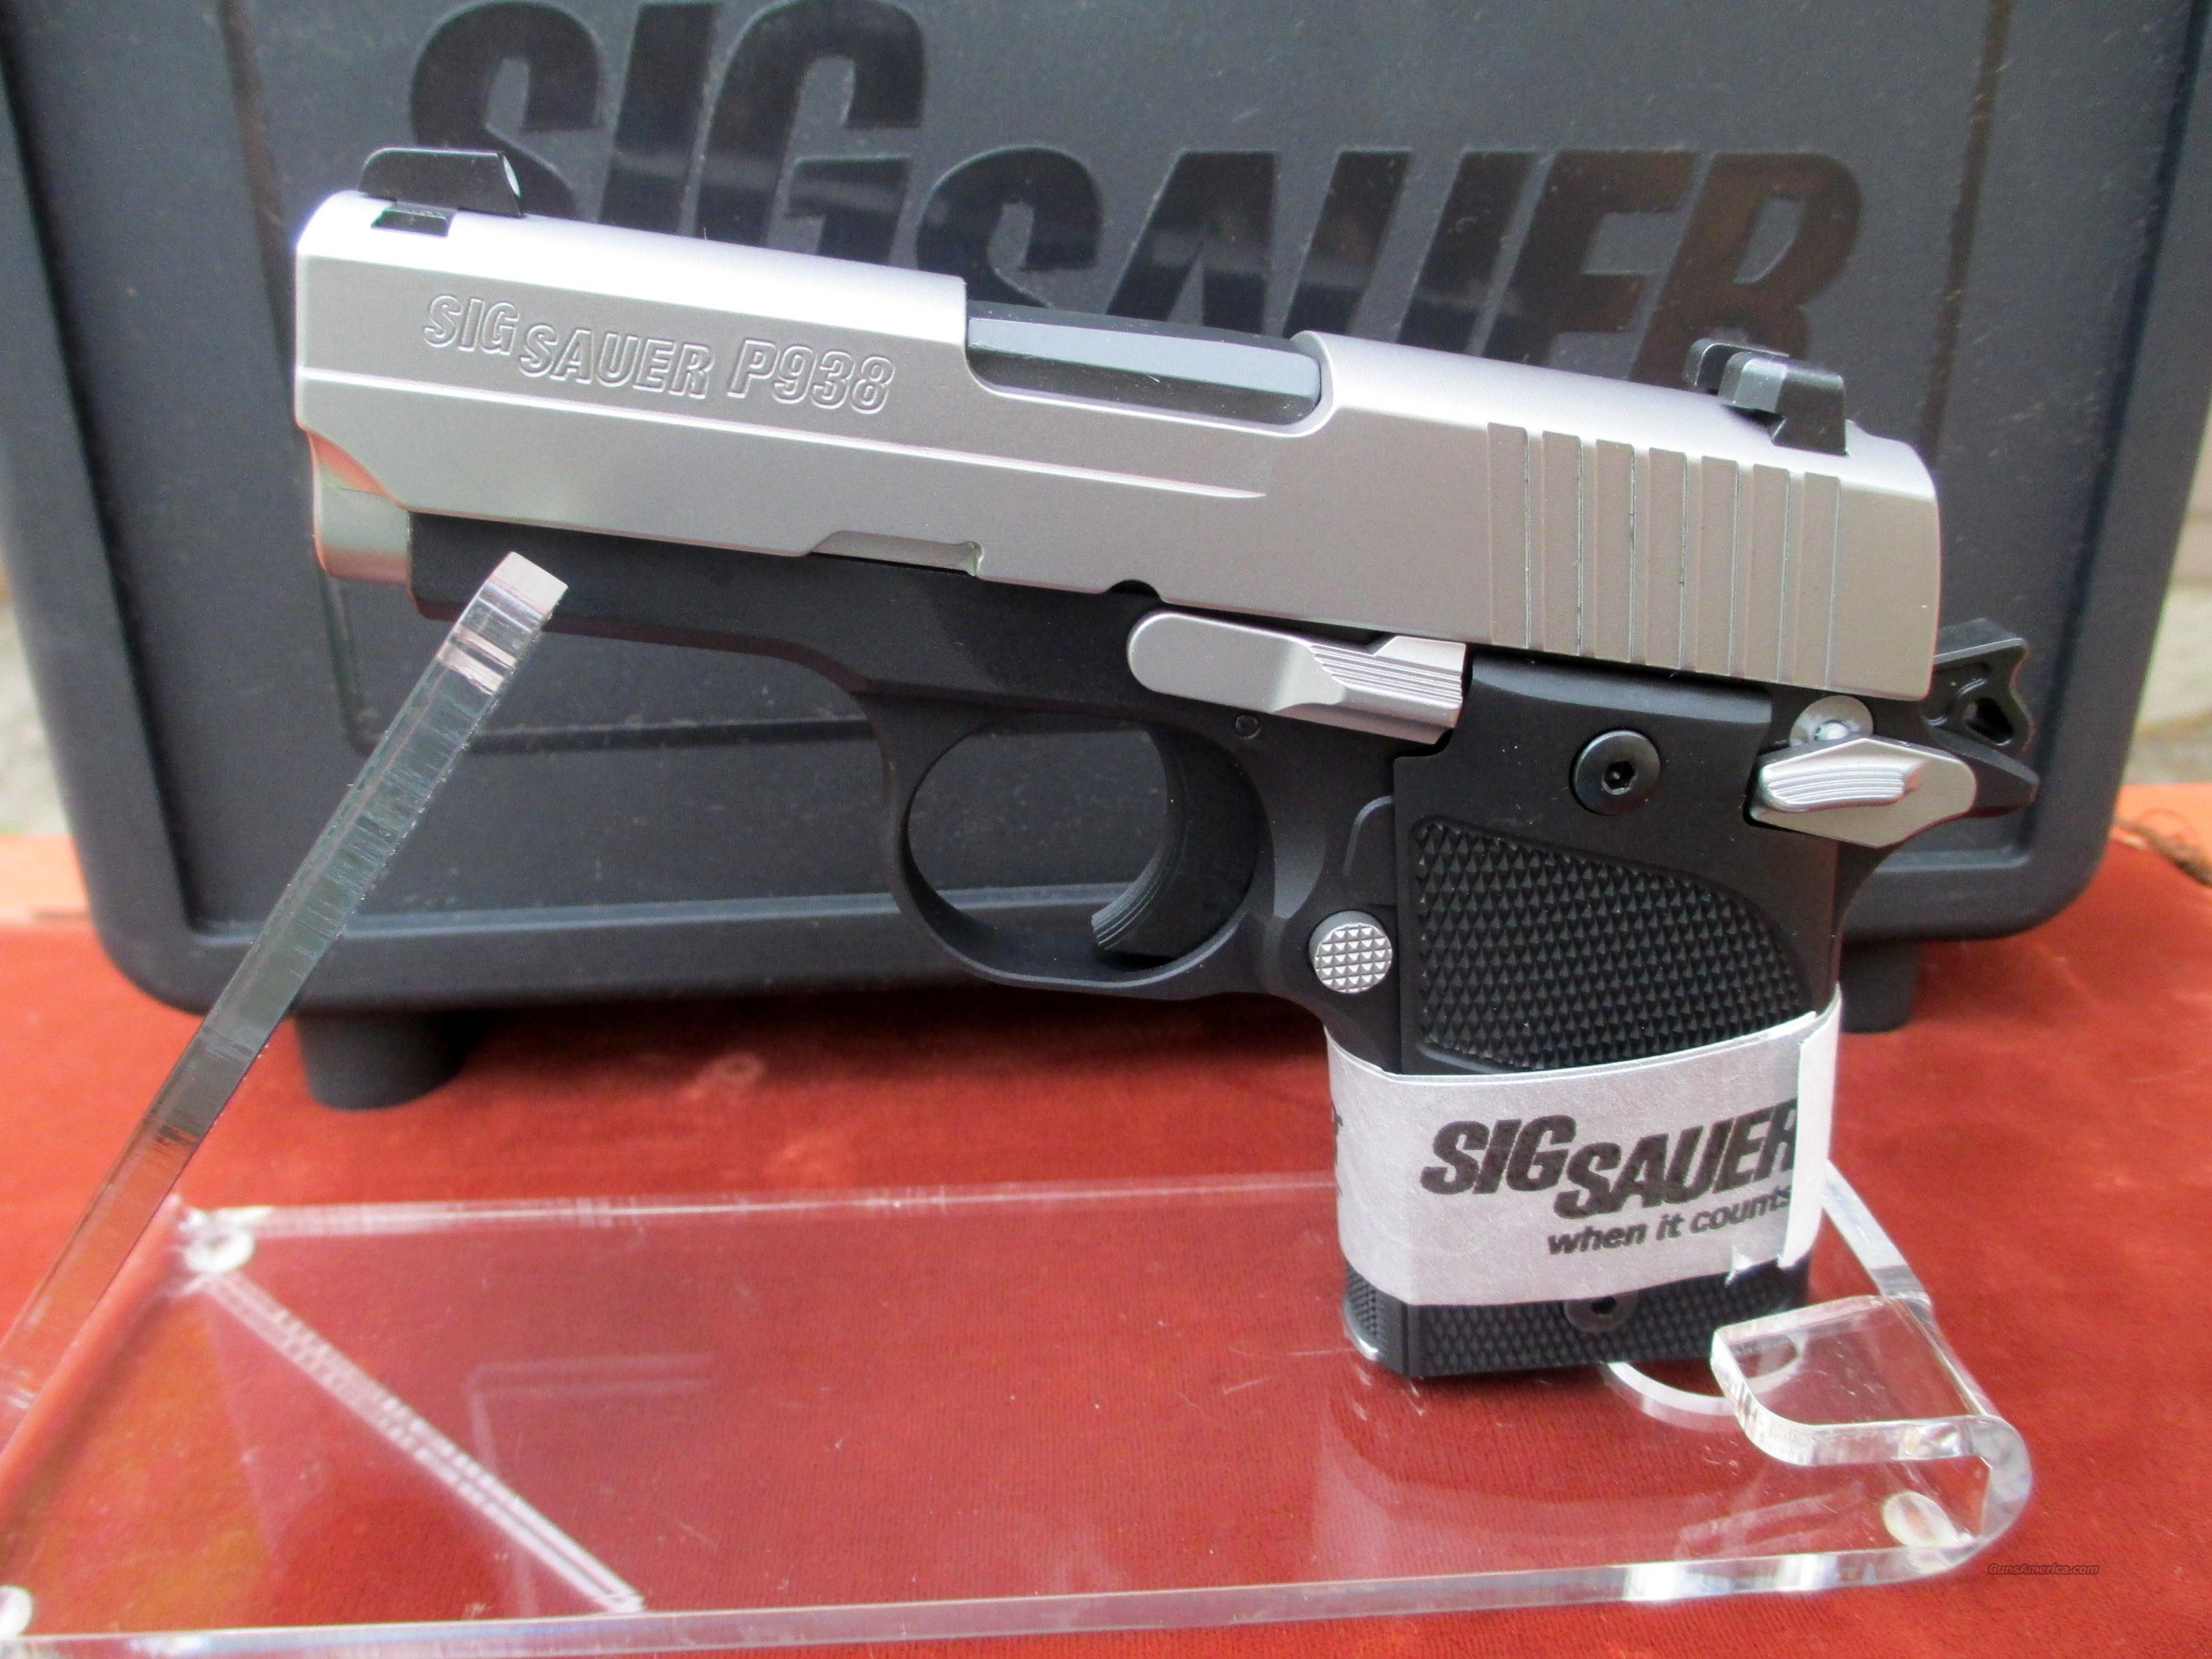 SIG SAUER P938-9-AG IN 9MM WITH ALUMINUM GRIPS REDUCED PRICE  Guns > Pistols > Sig - Sauer/Sigarms Pistols > Other